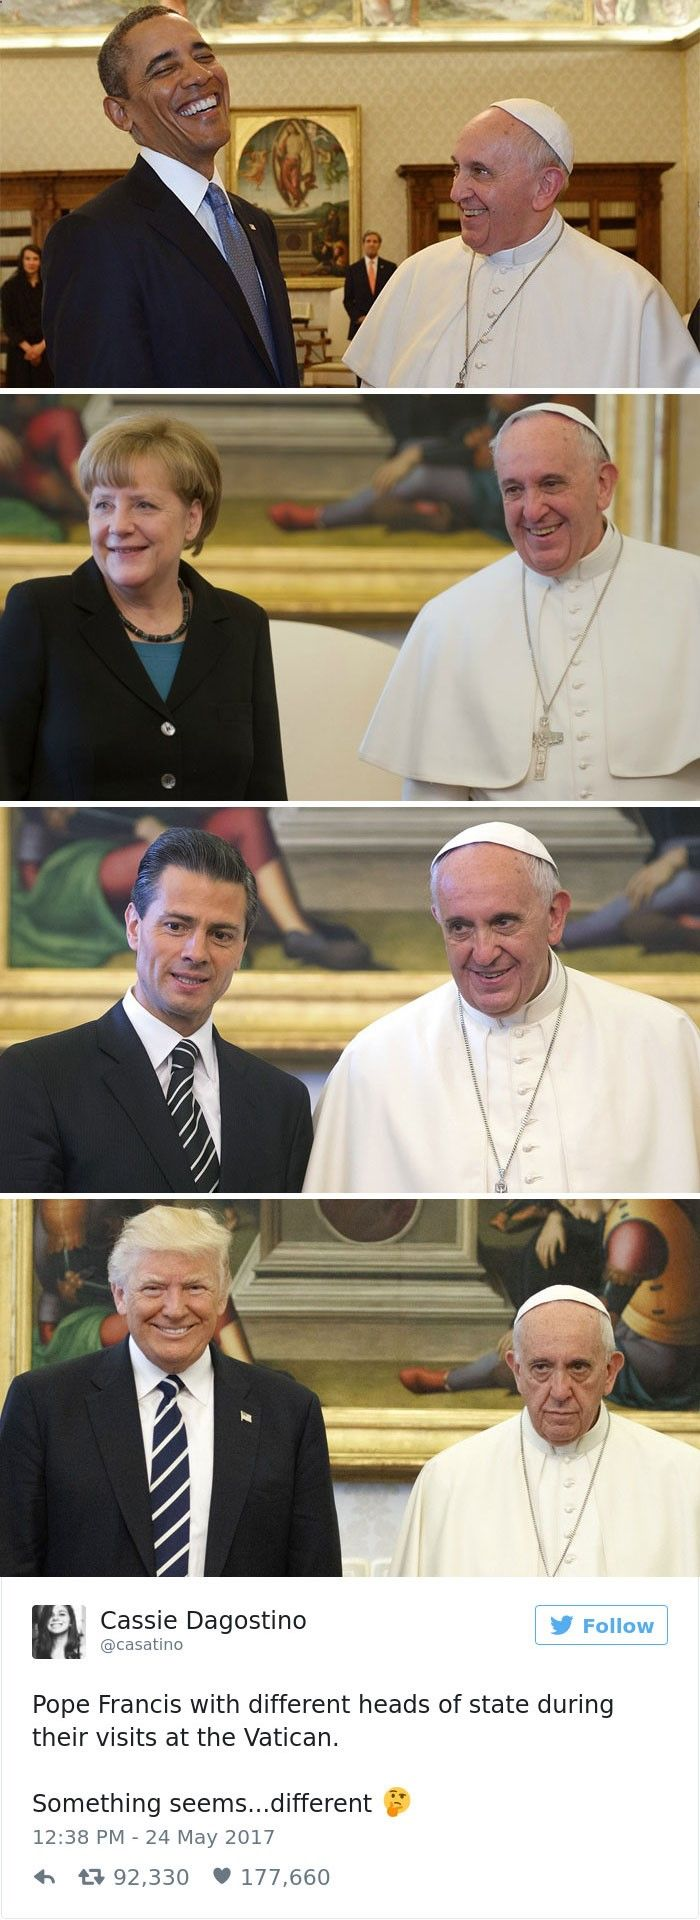 10  Of The Funniest Reactions To Super Sad Pope Meeting The Trumps ➦➦ http://www.diverint.com/memes-imagenes-graciosas-semestre-dan-calificaciones